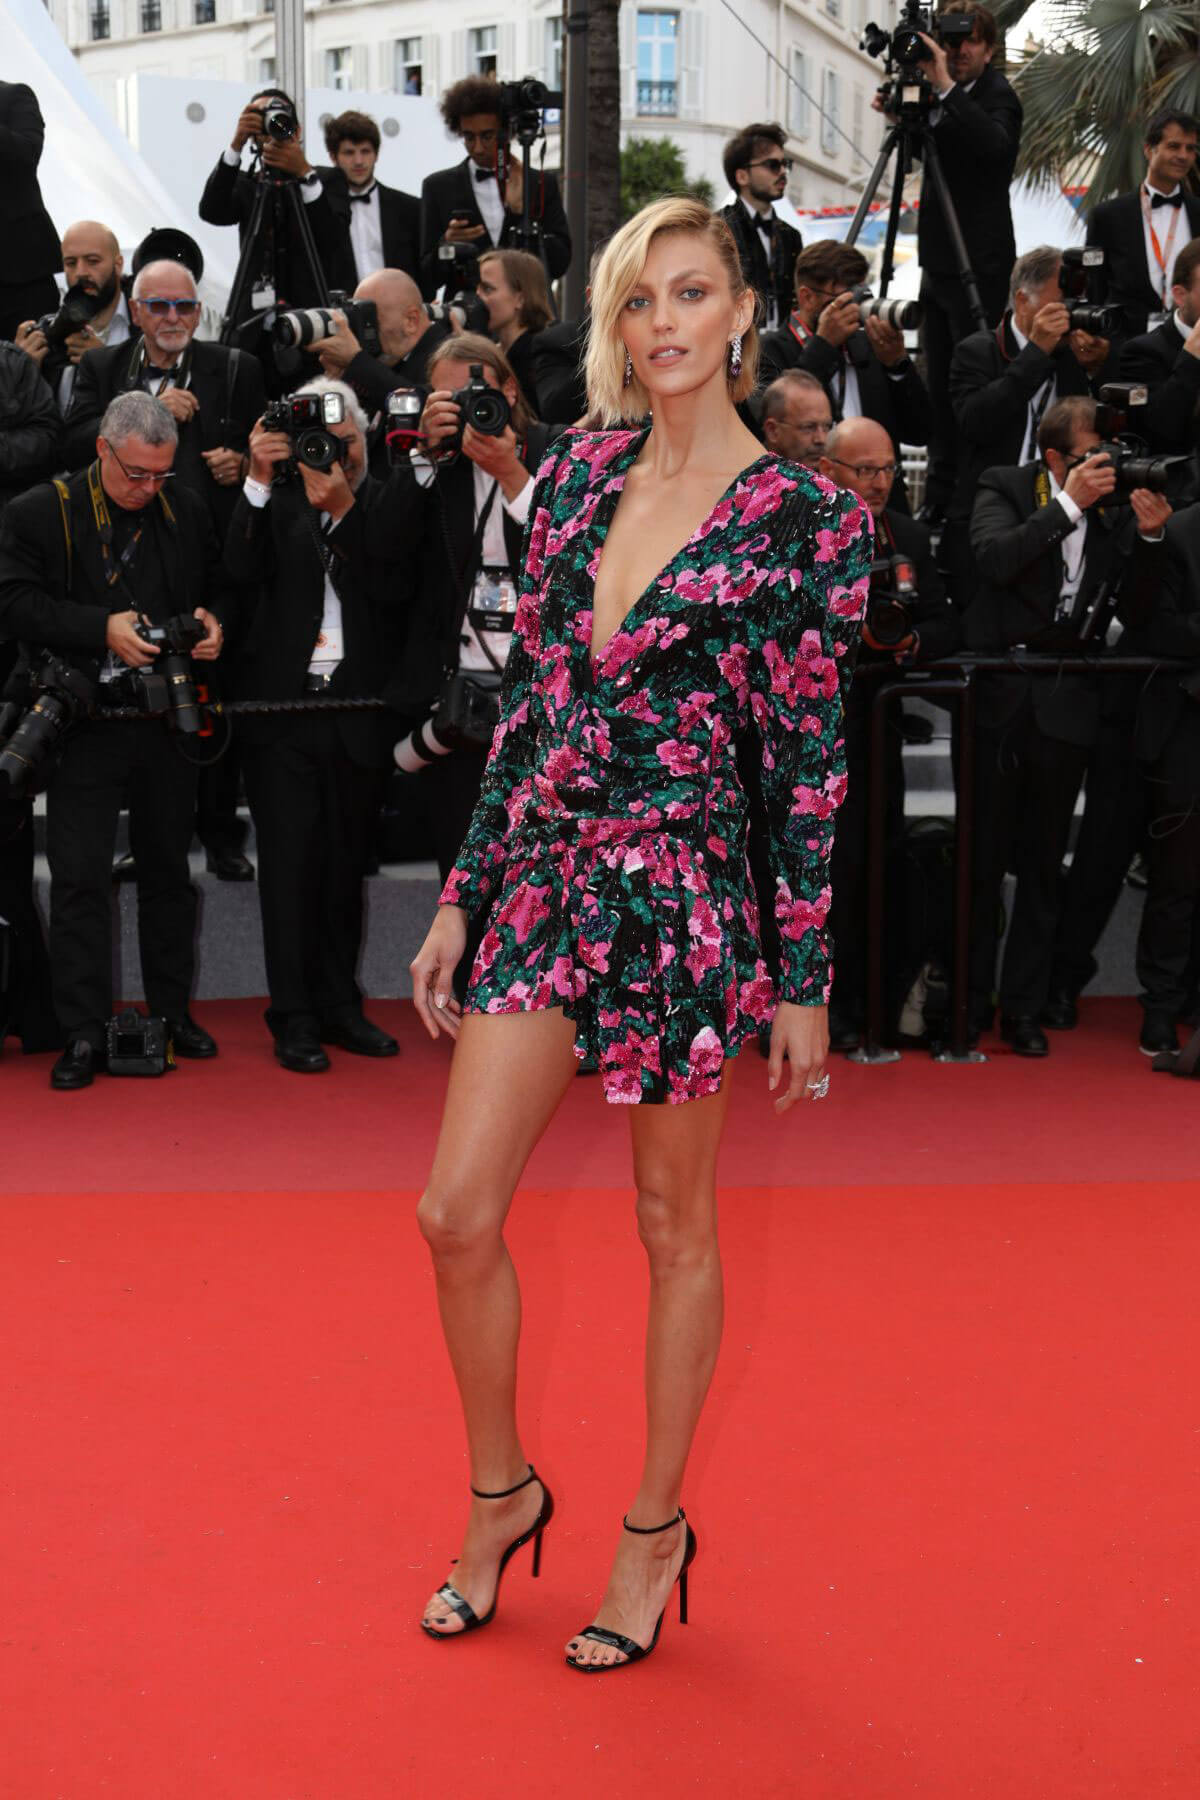 Anja Rubik Cannes Red Carpet - Anja Rubik Cannes Red Carpet